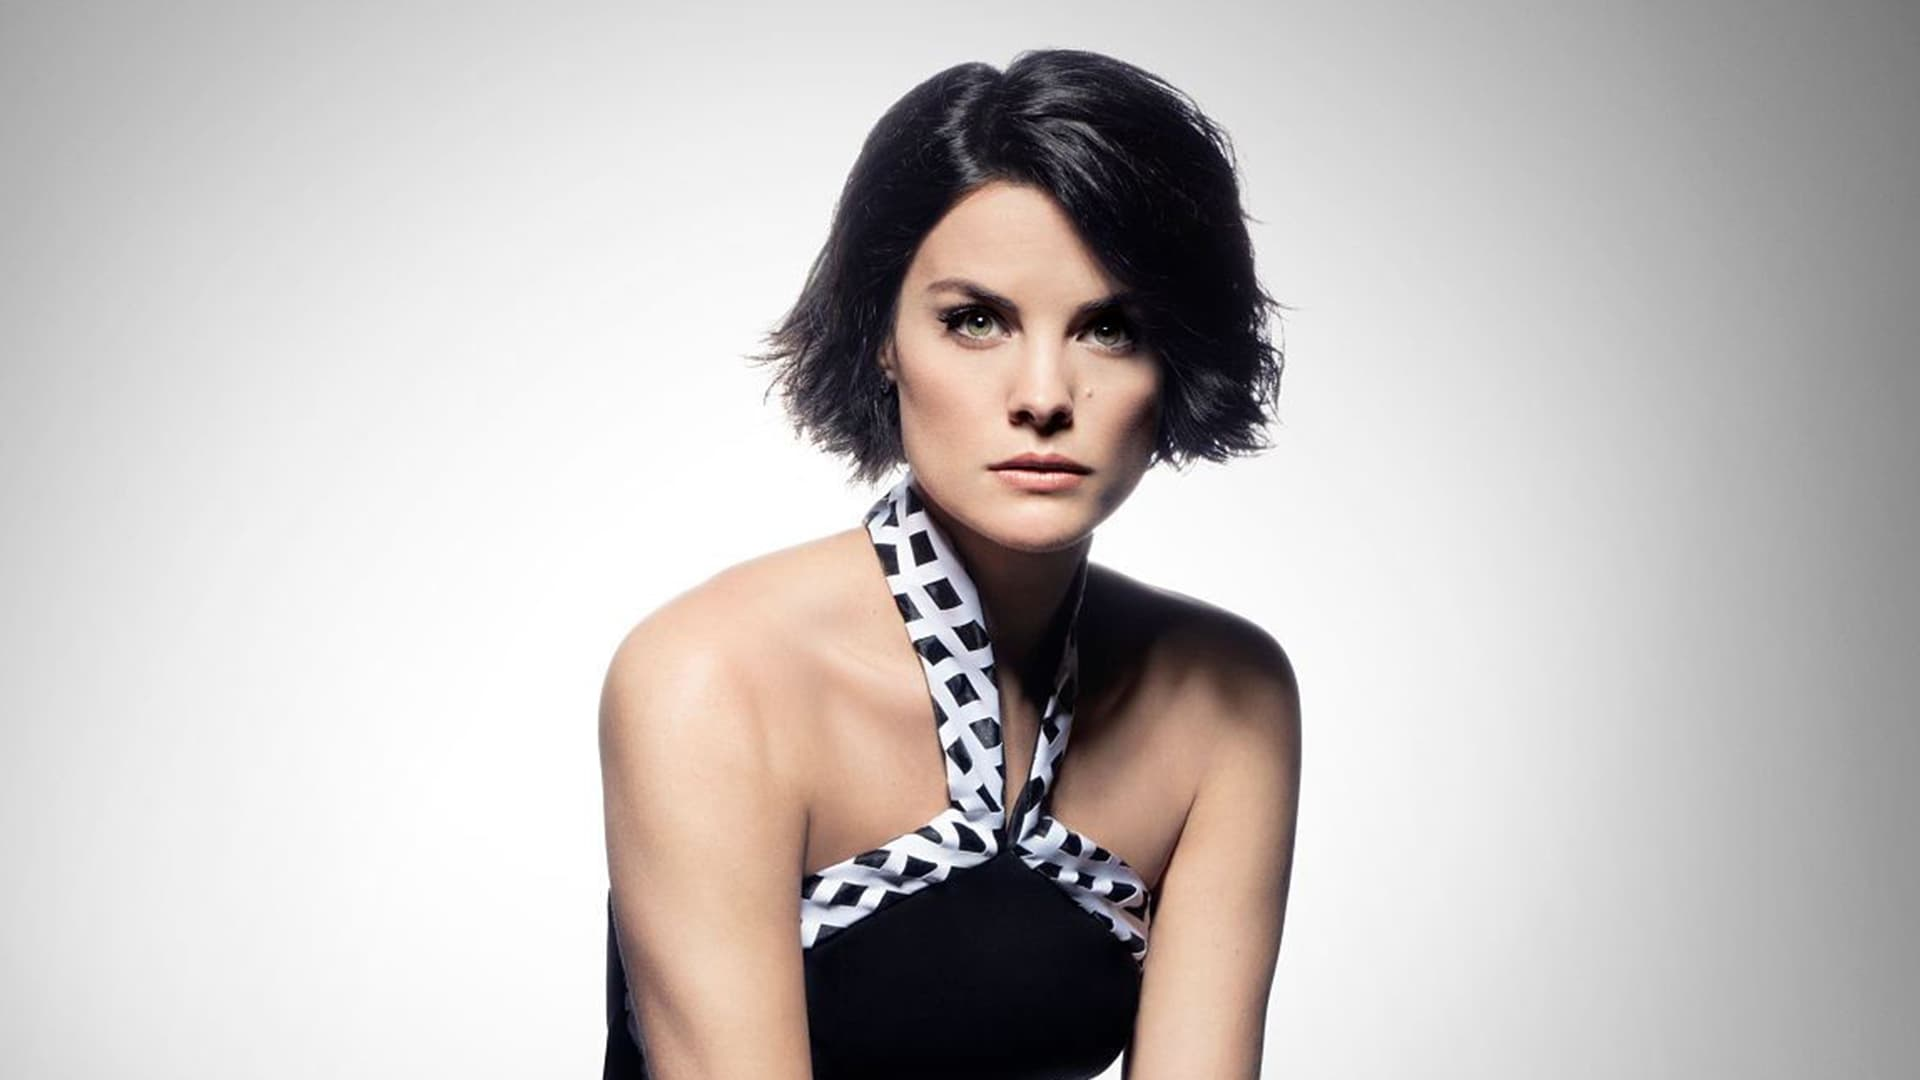 High Quality Car Pictures And Car Wallpapers 16 Jaimie Alexander Wallpapers Hd High Quality Resolution